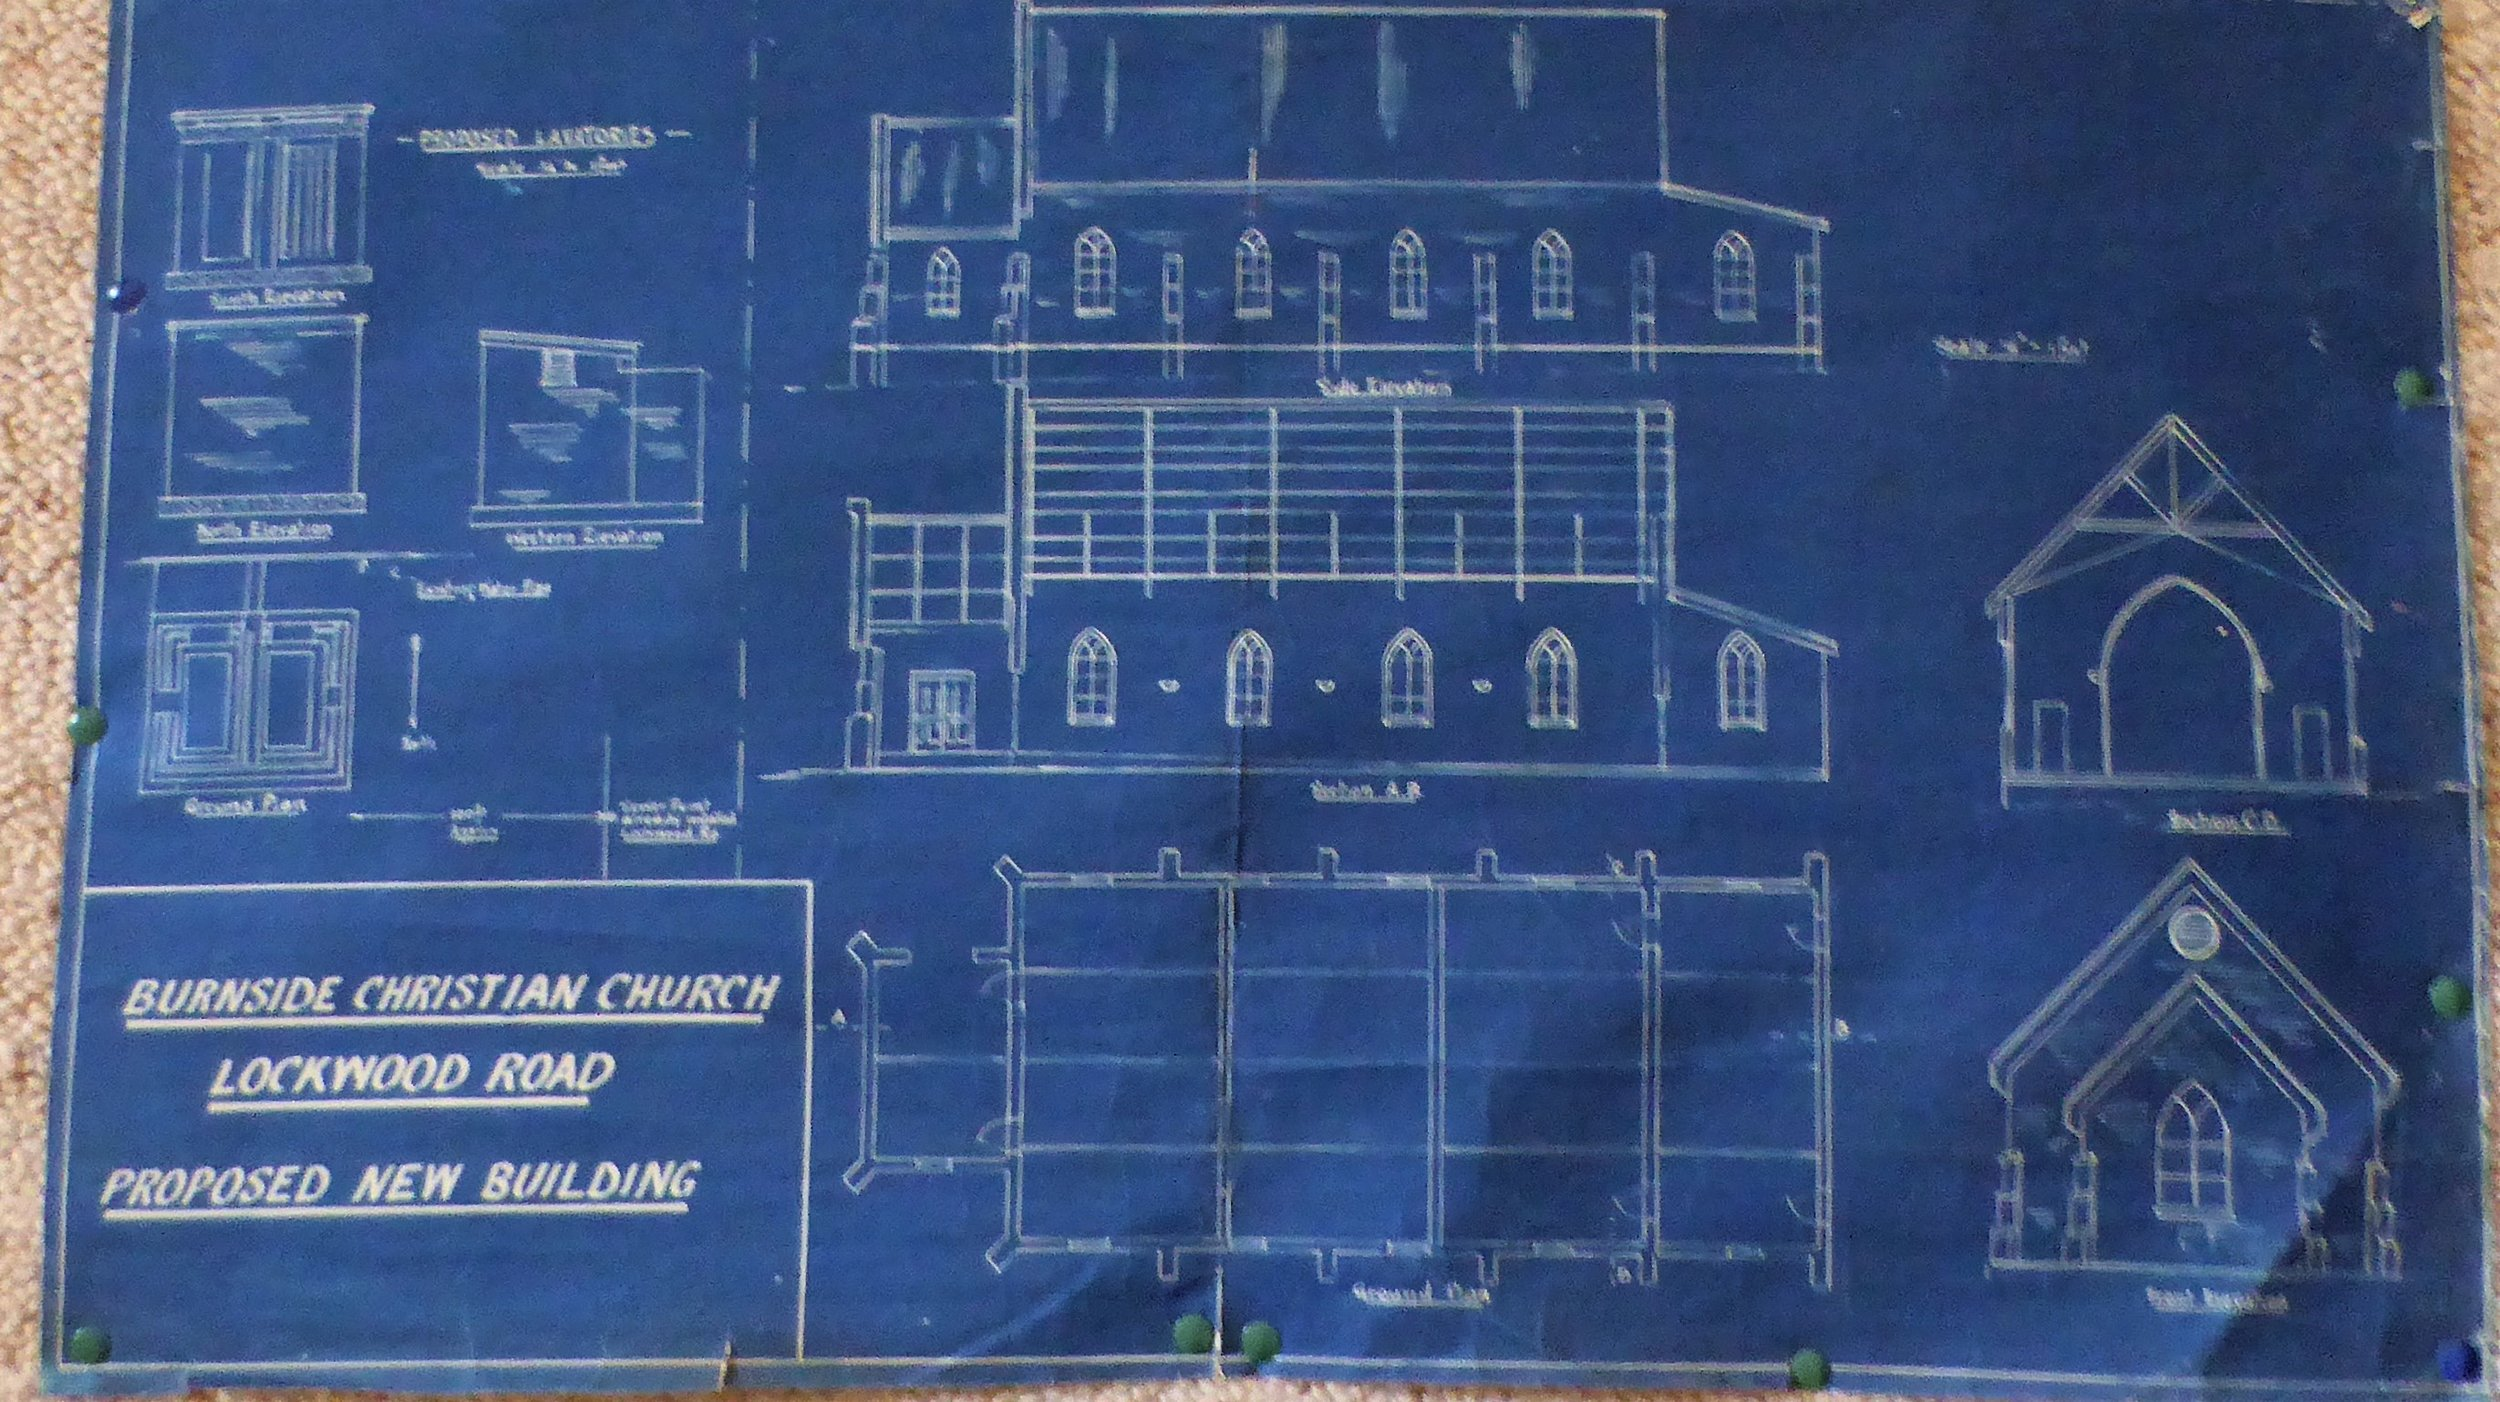 Draft plans for 1939 church building